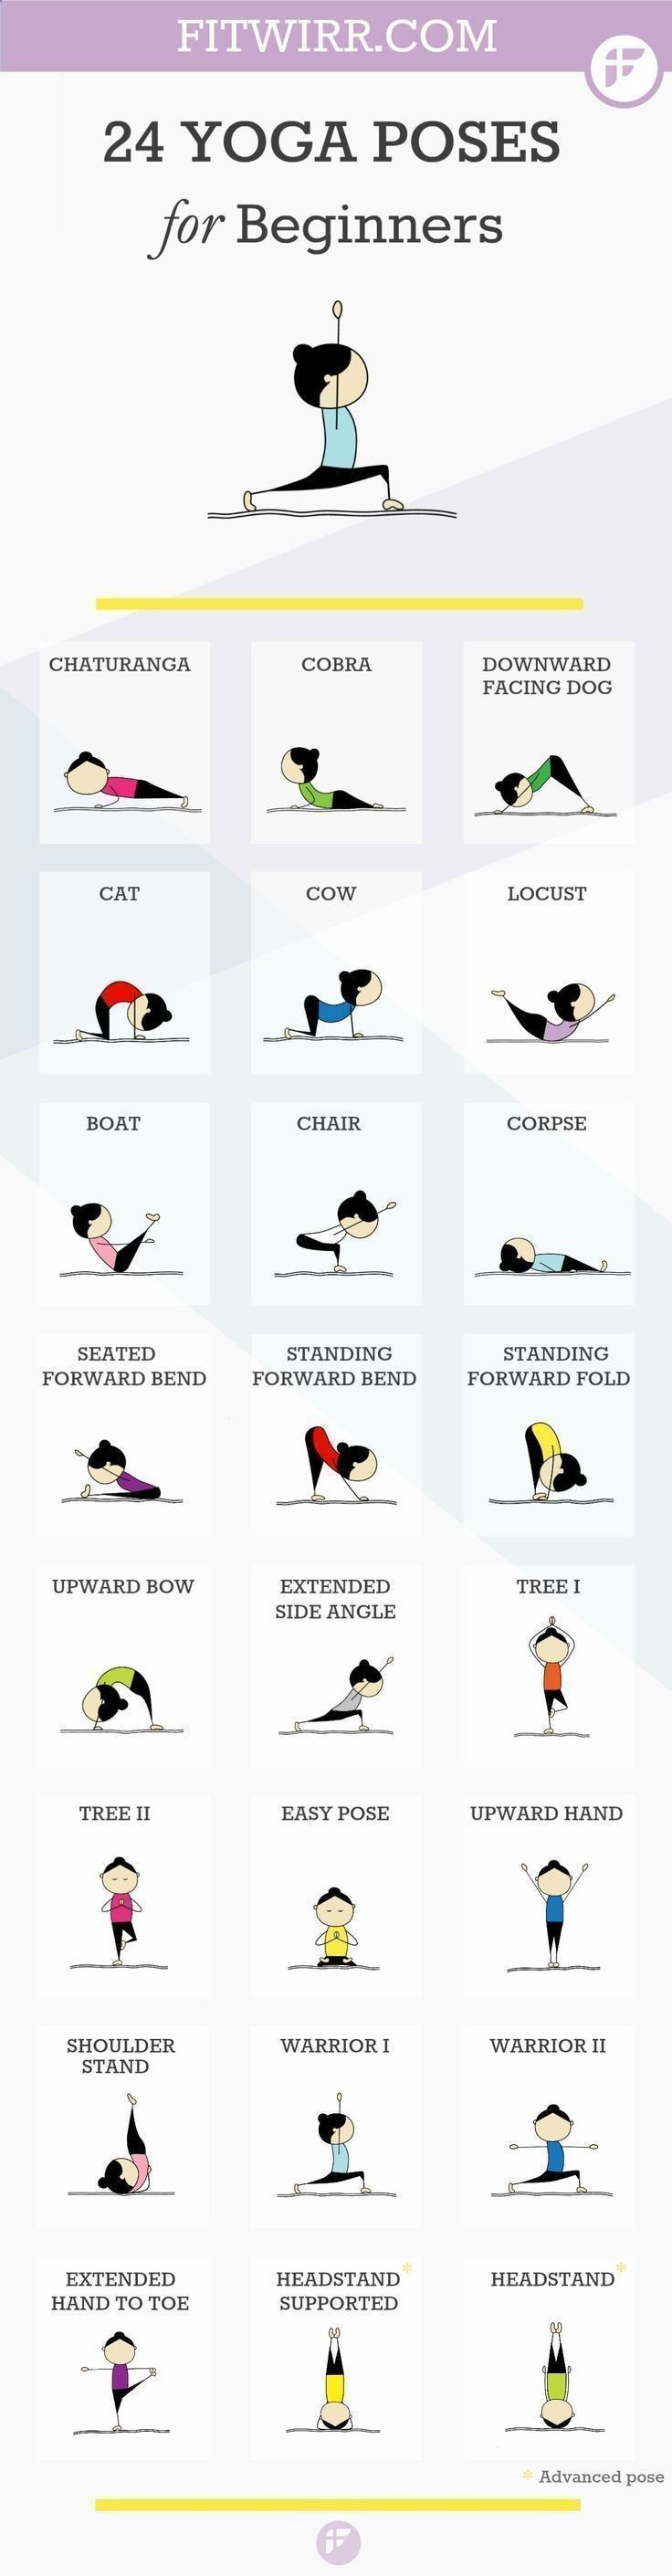 """Program Weight Loss - 24 Yoga poses for beginners. Namaste :-). #yoga #meditation #health amzn.to/2stx5H7 For starters, the E Factor Diet is an online weight-loss program. The ingredients include """"simple real foods"""" found at local grocery stores. #meditationforhealth #beginneryogaposes #yogameditation #pilatesforbeginners"""